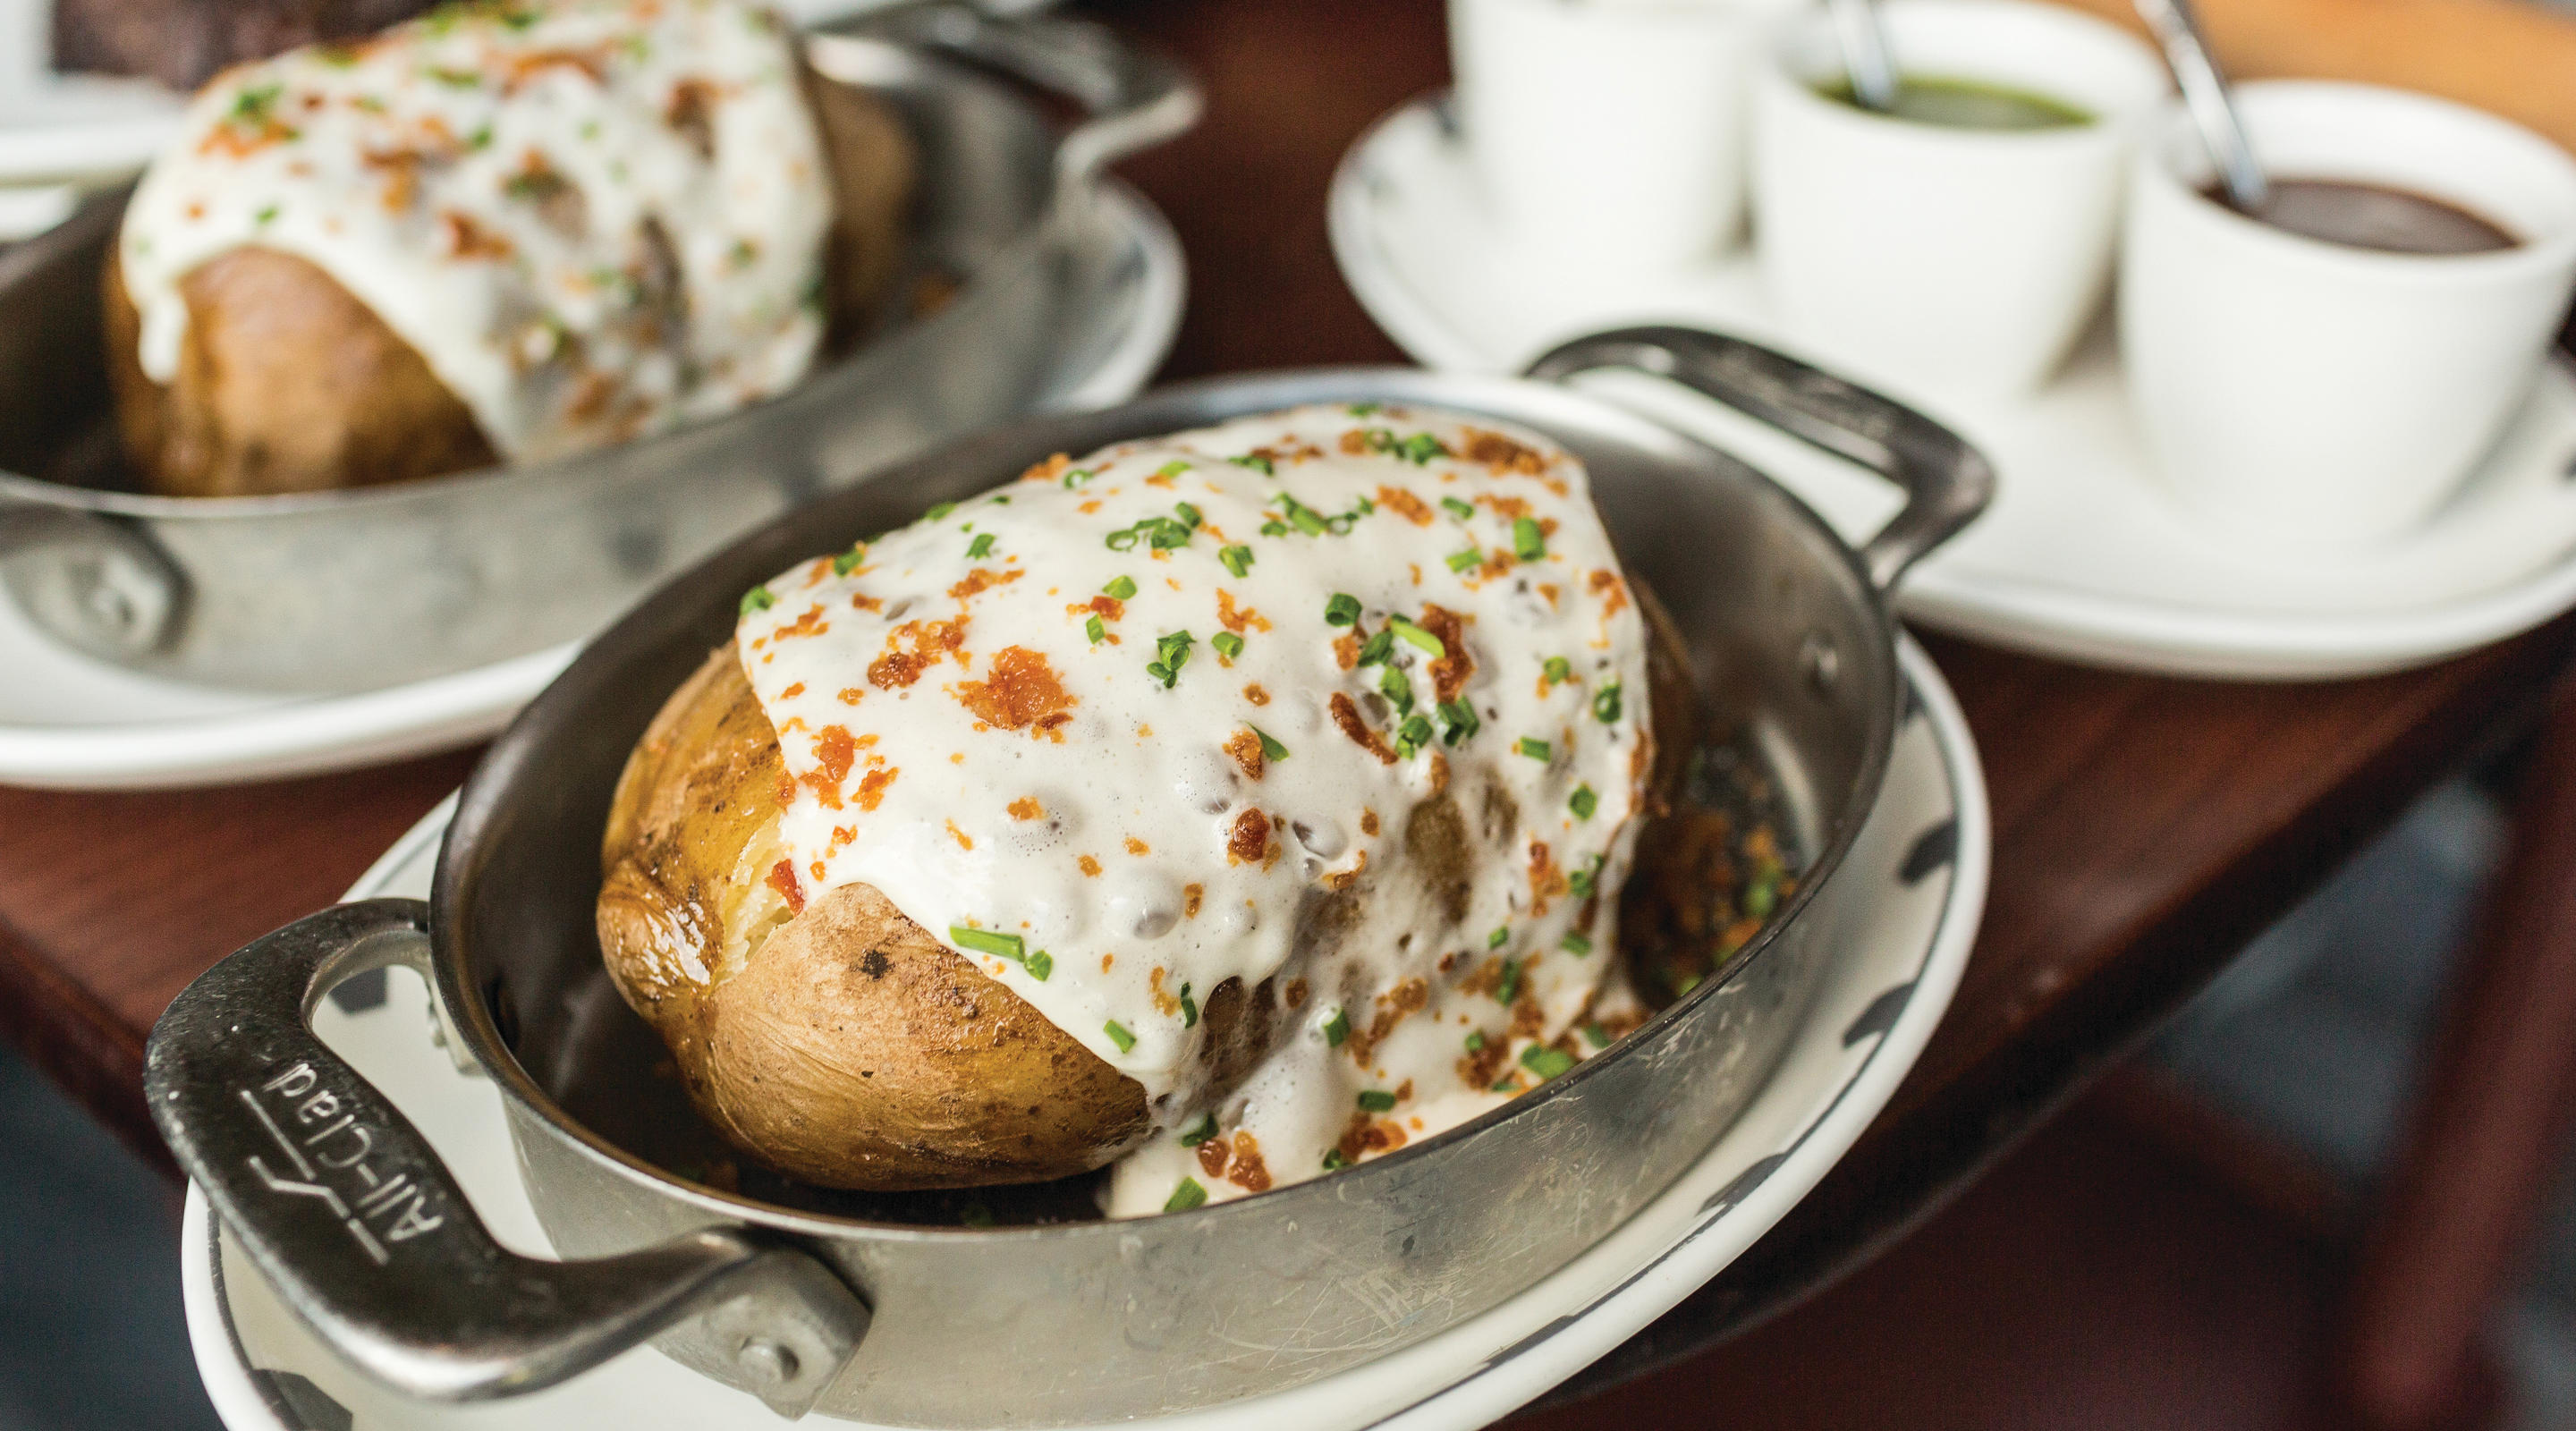 Loaded baked potato side dish from Voltaggio Brothers.